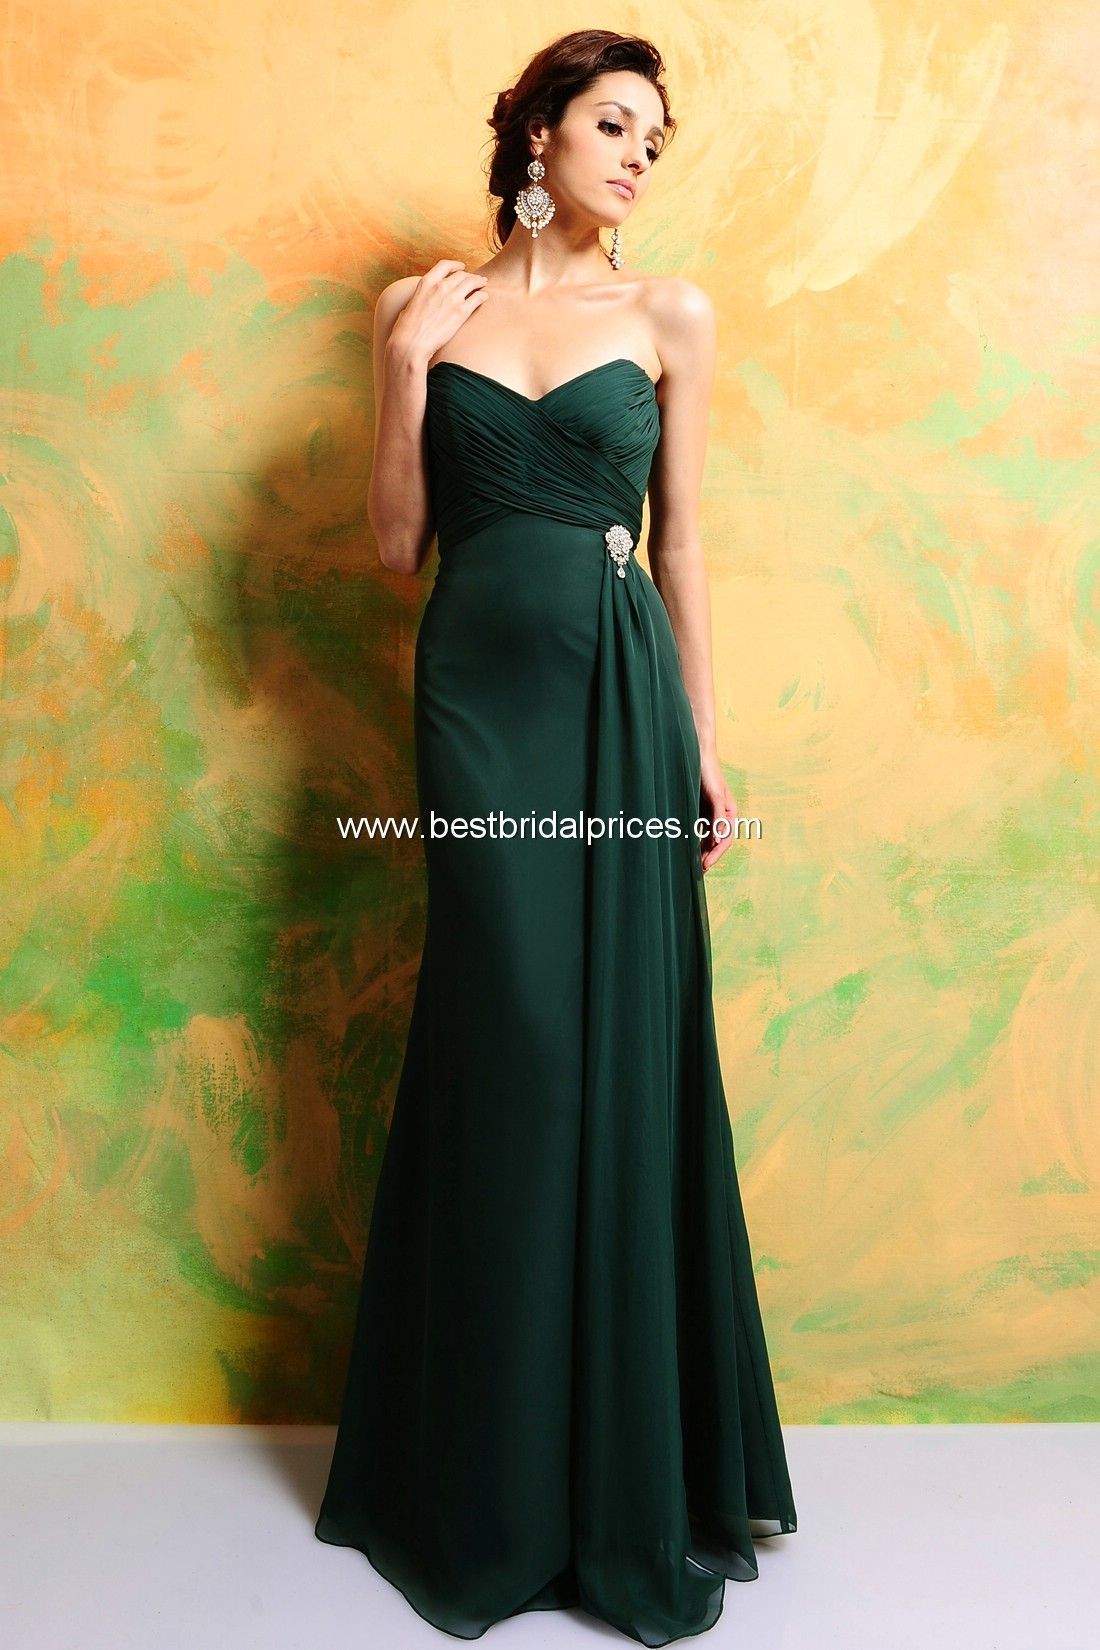 Green Bridesmaid Eden Dresses Style 7324